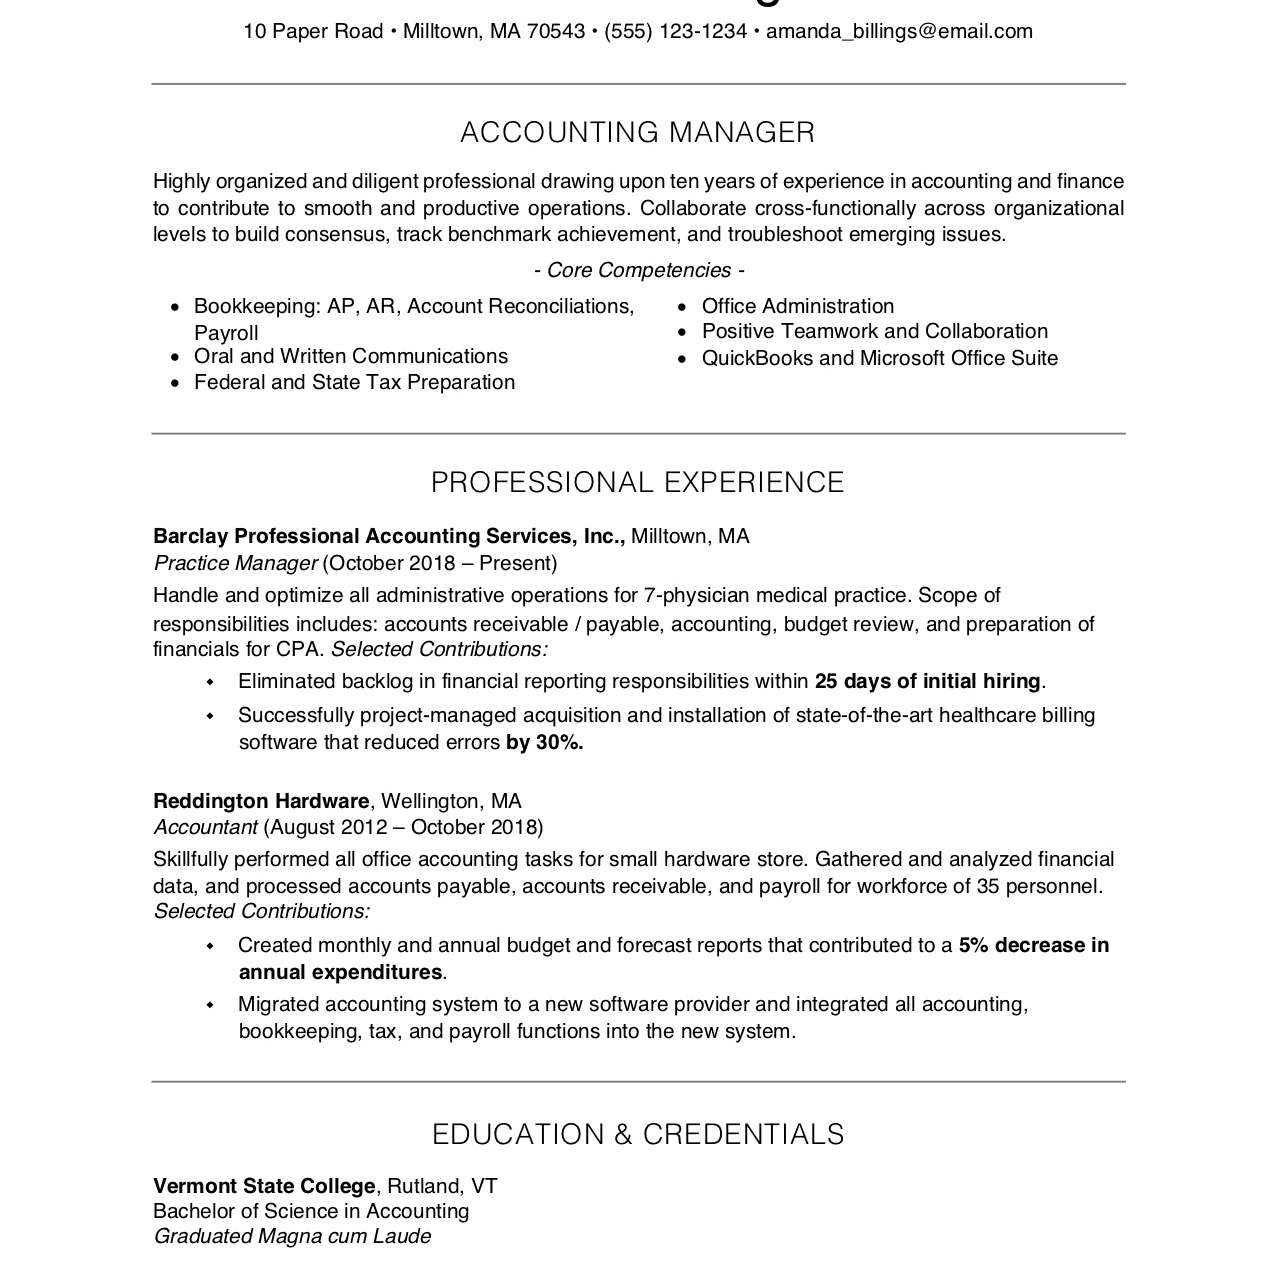 free professional resume examples and writing tips qualification format 2063596res1 fonts Resume Resume Qualification Format